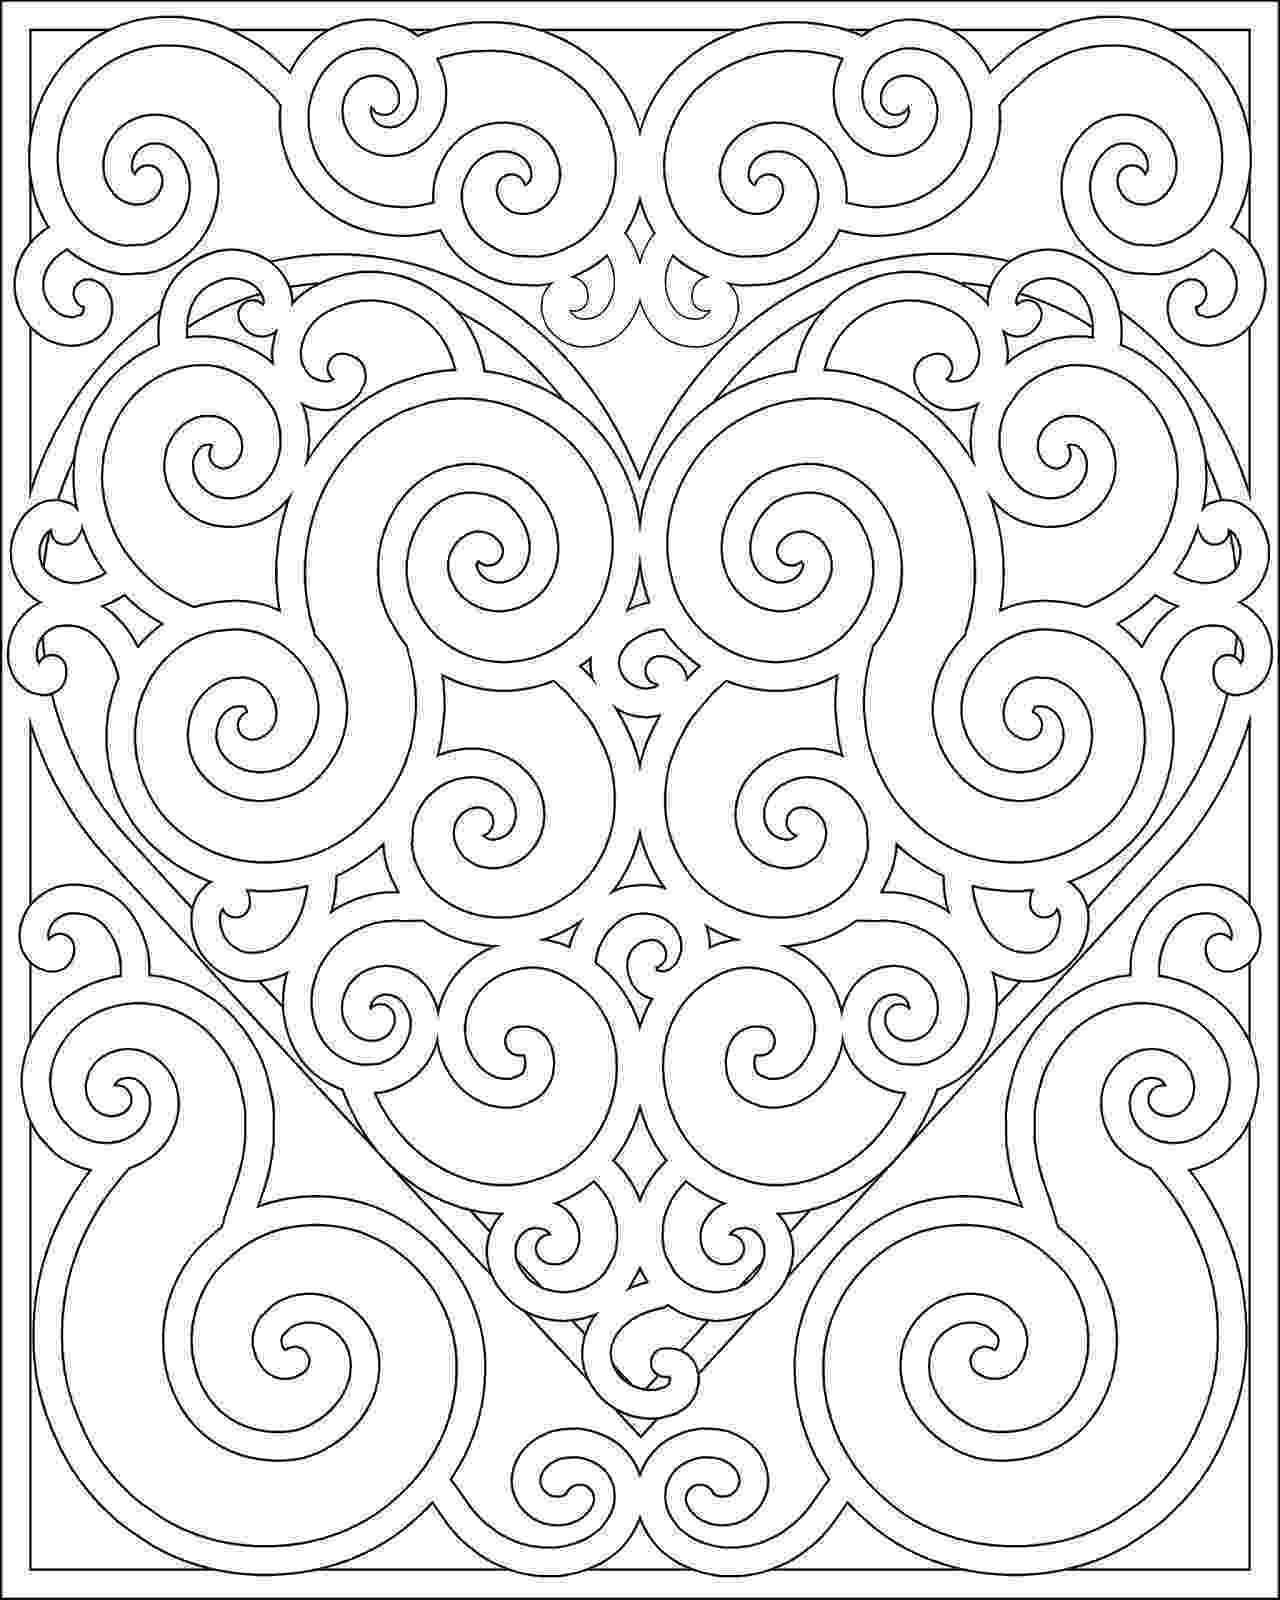 pattern coloring sheets floral pattern coloring page free printable coloring pages coloring sheets pattern